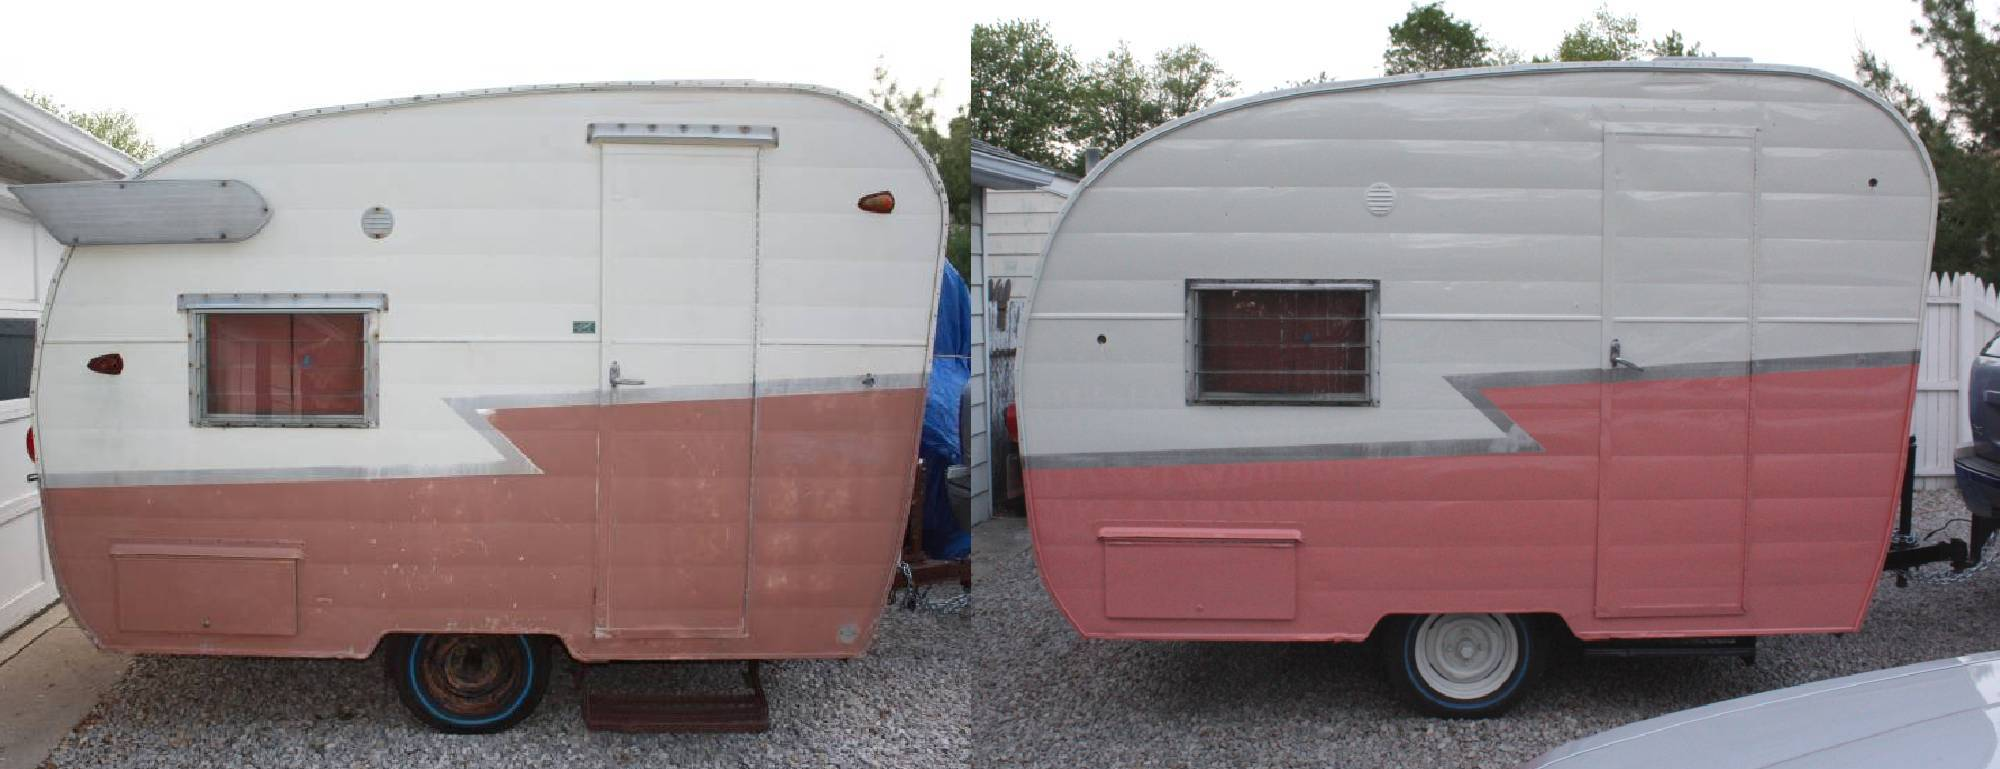 Before And After Of The Shasta Compact